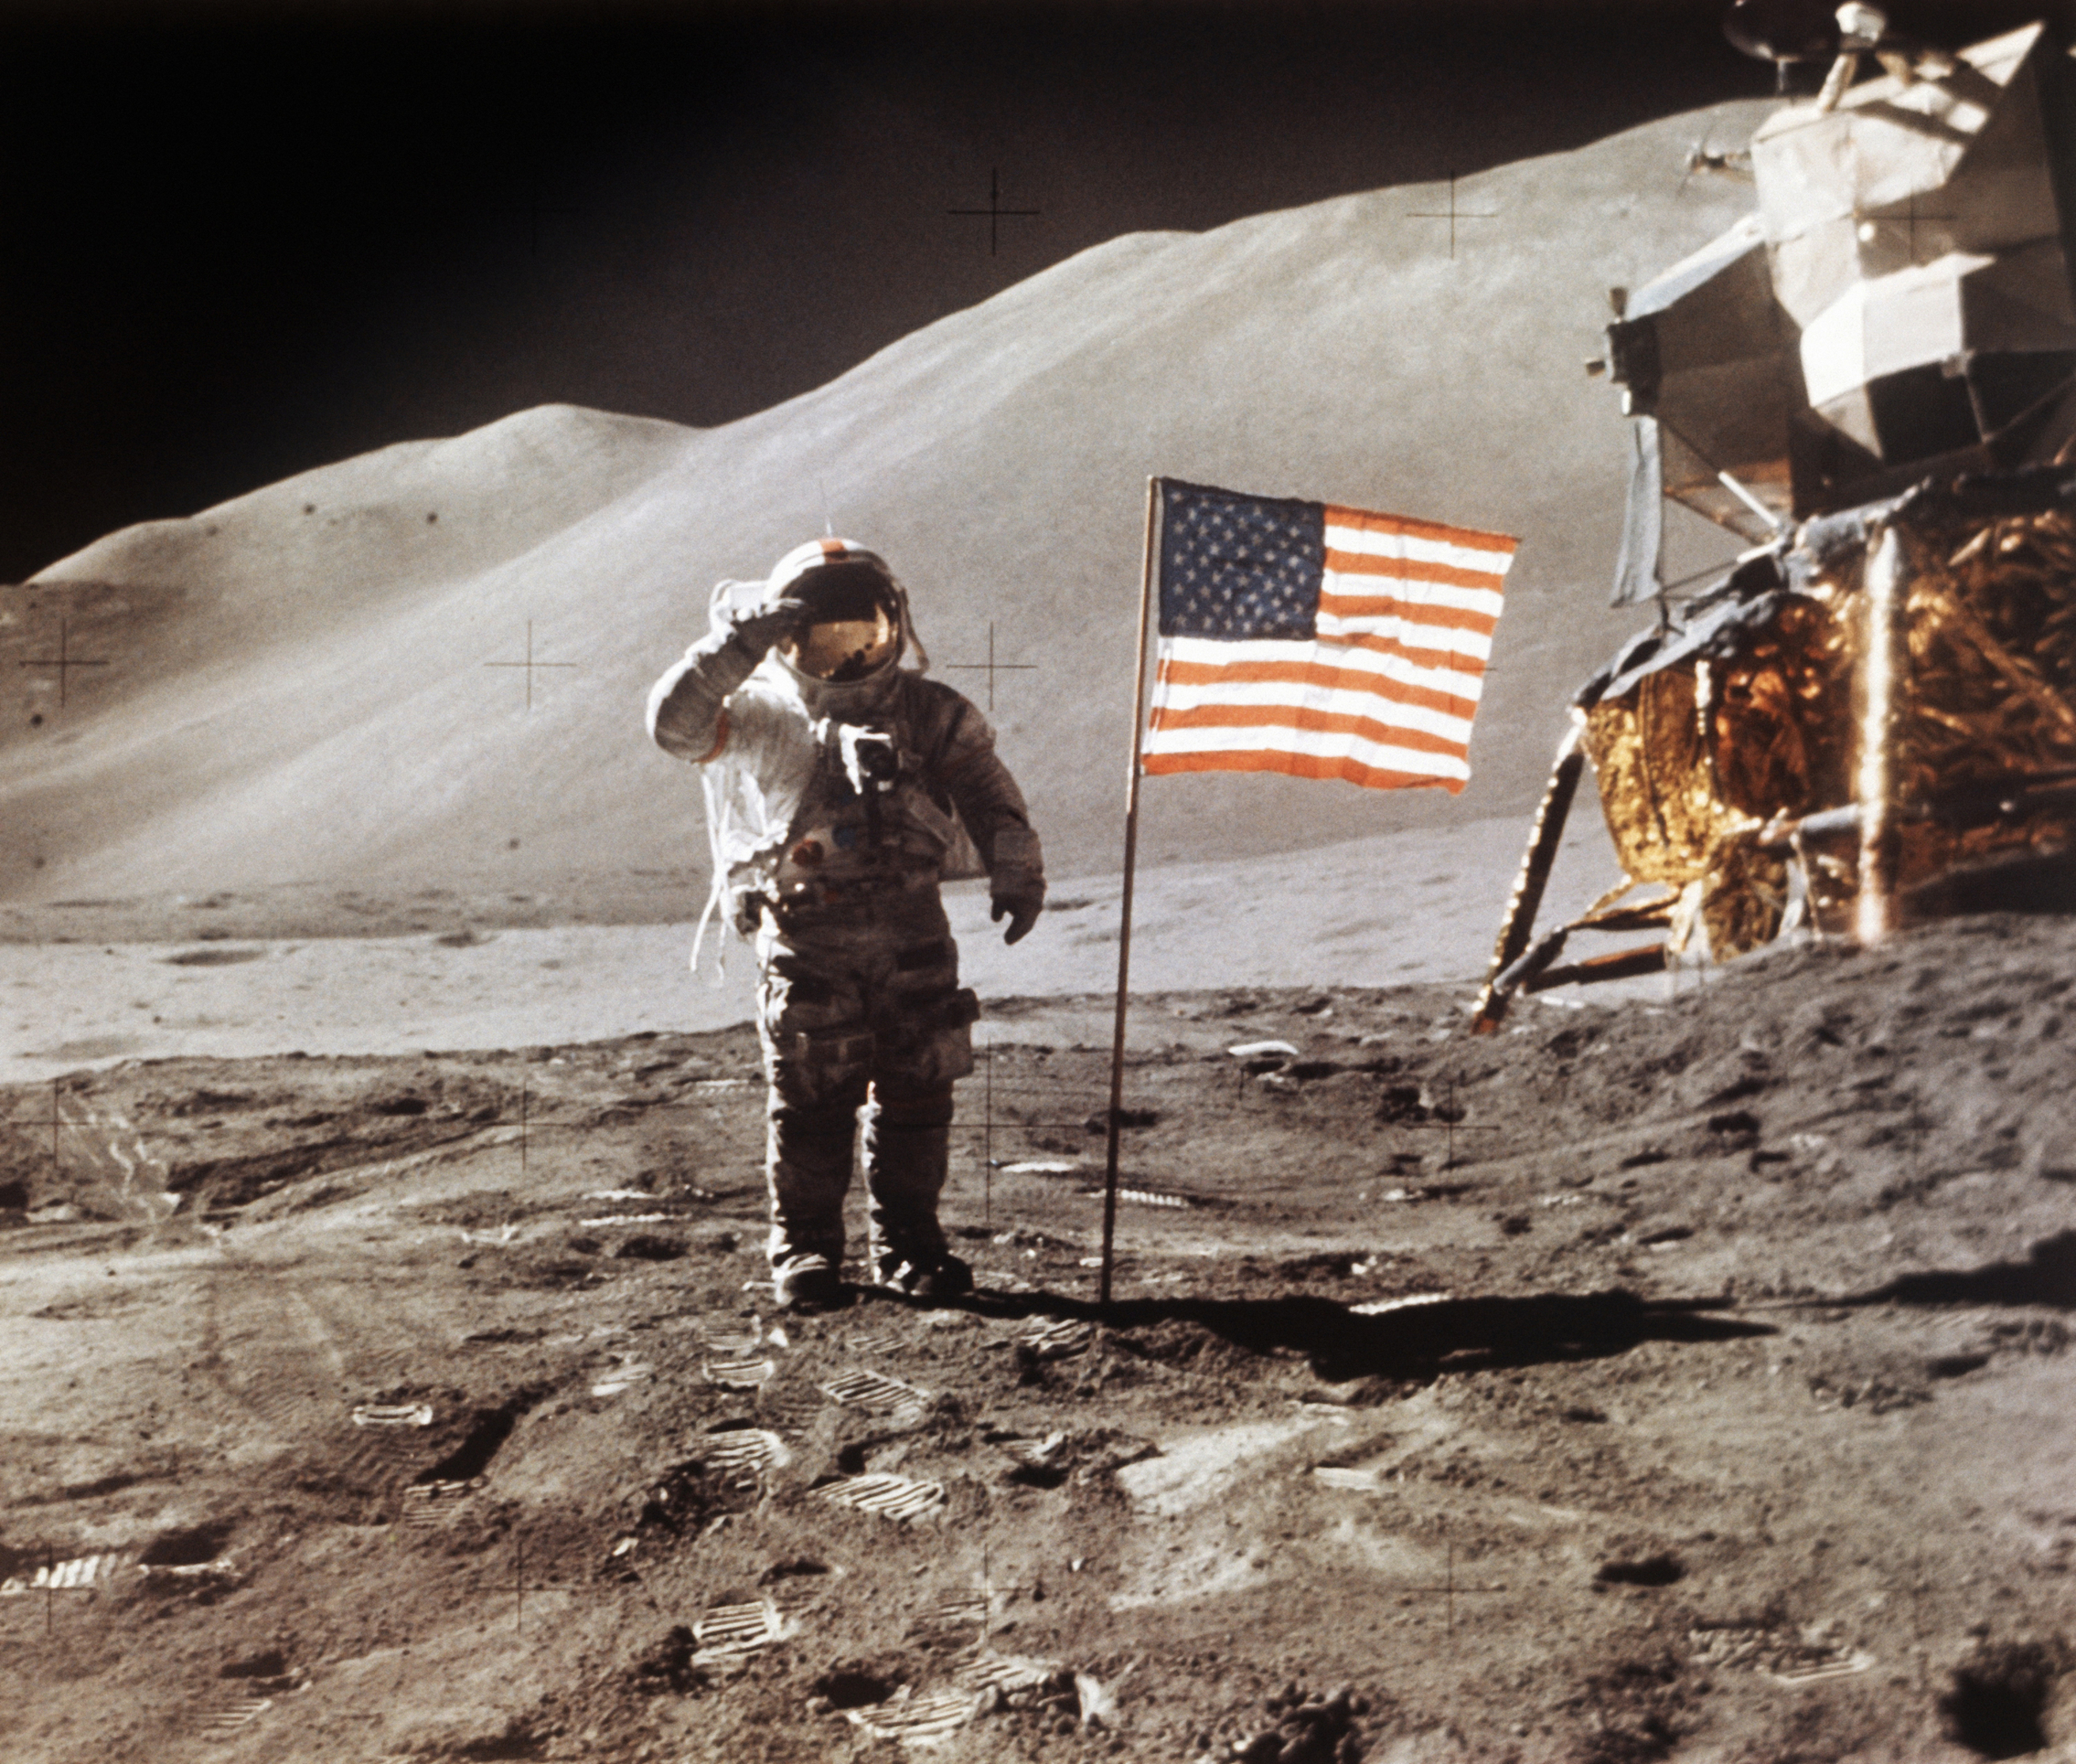 FILE - In this July 30, 1971 photo made available by NASA, Apollo 15 Lunar Module Pilot James B. Irwin salutes while standing beside the fourth American flag planted on the surface of the moon. (NASA via AP)